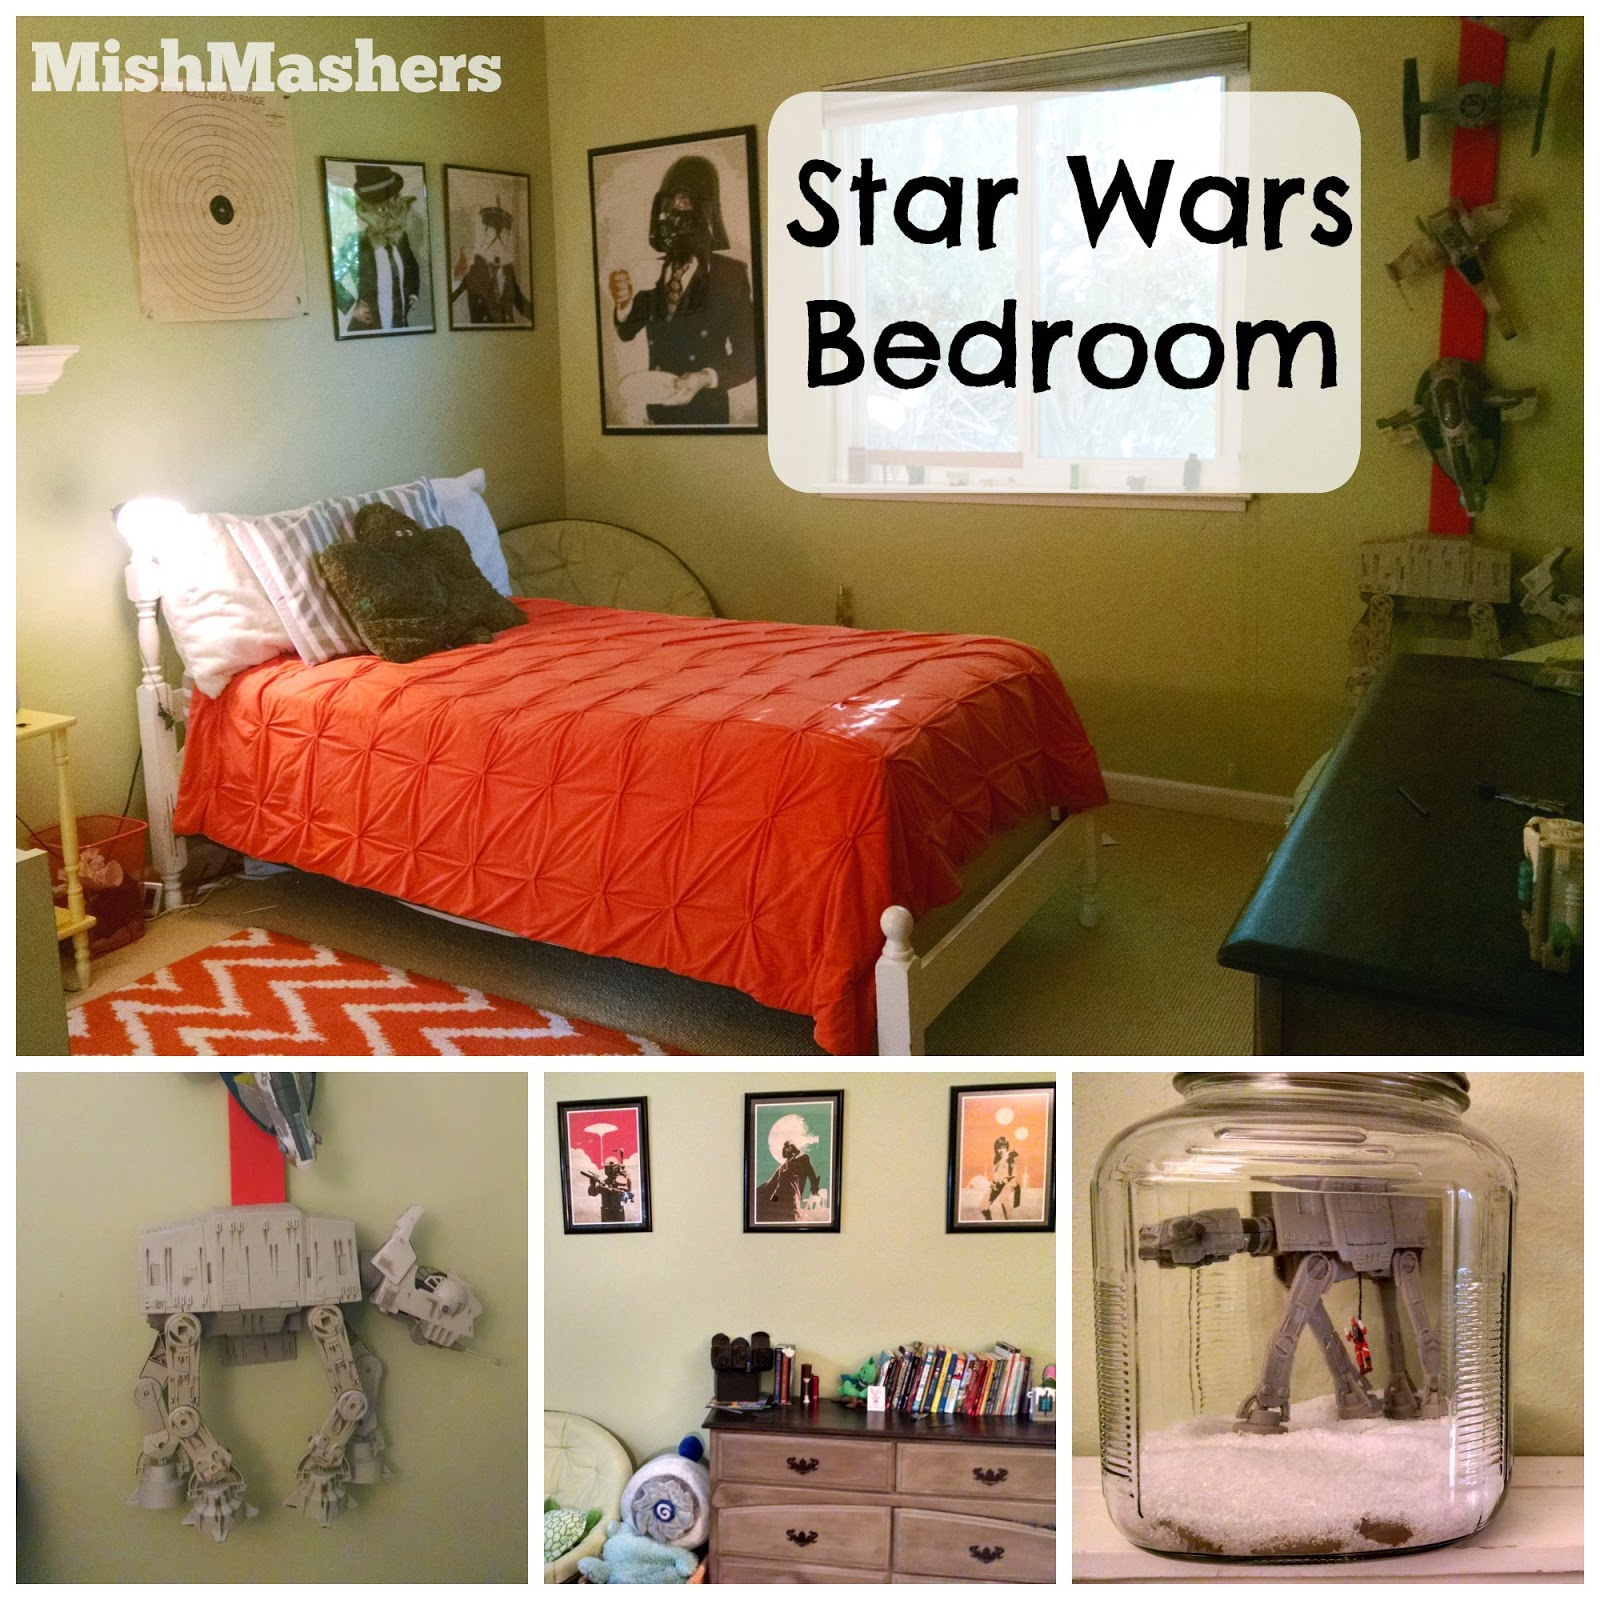 MishMashers: Star Wars Bedroom